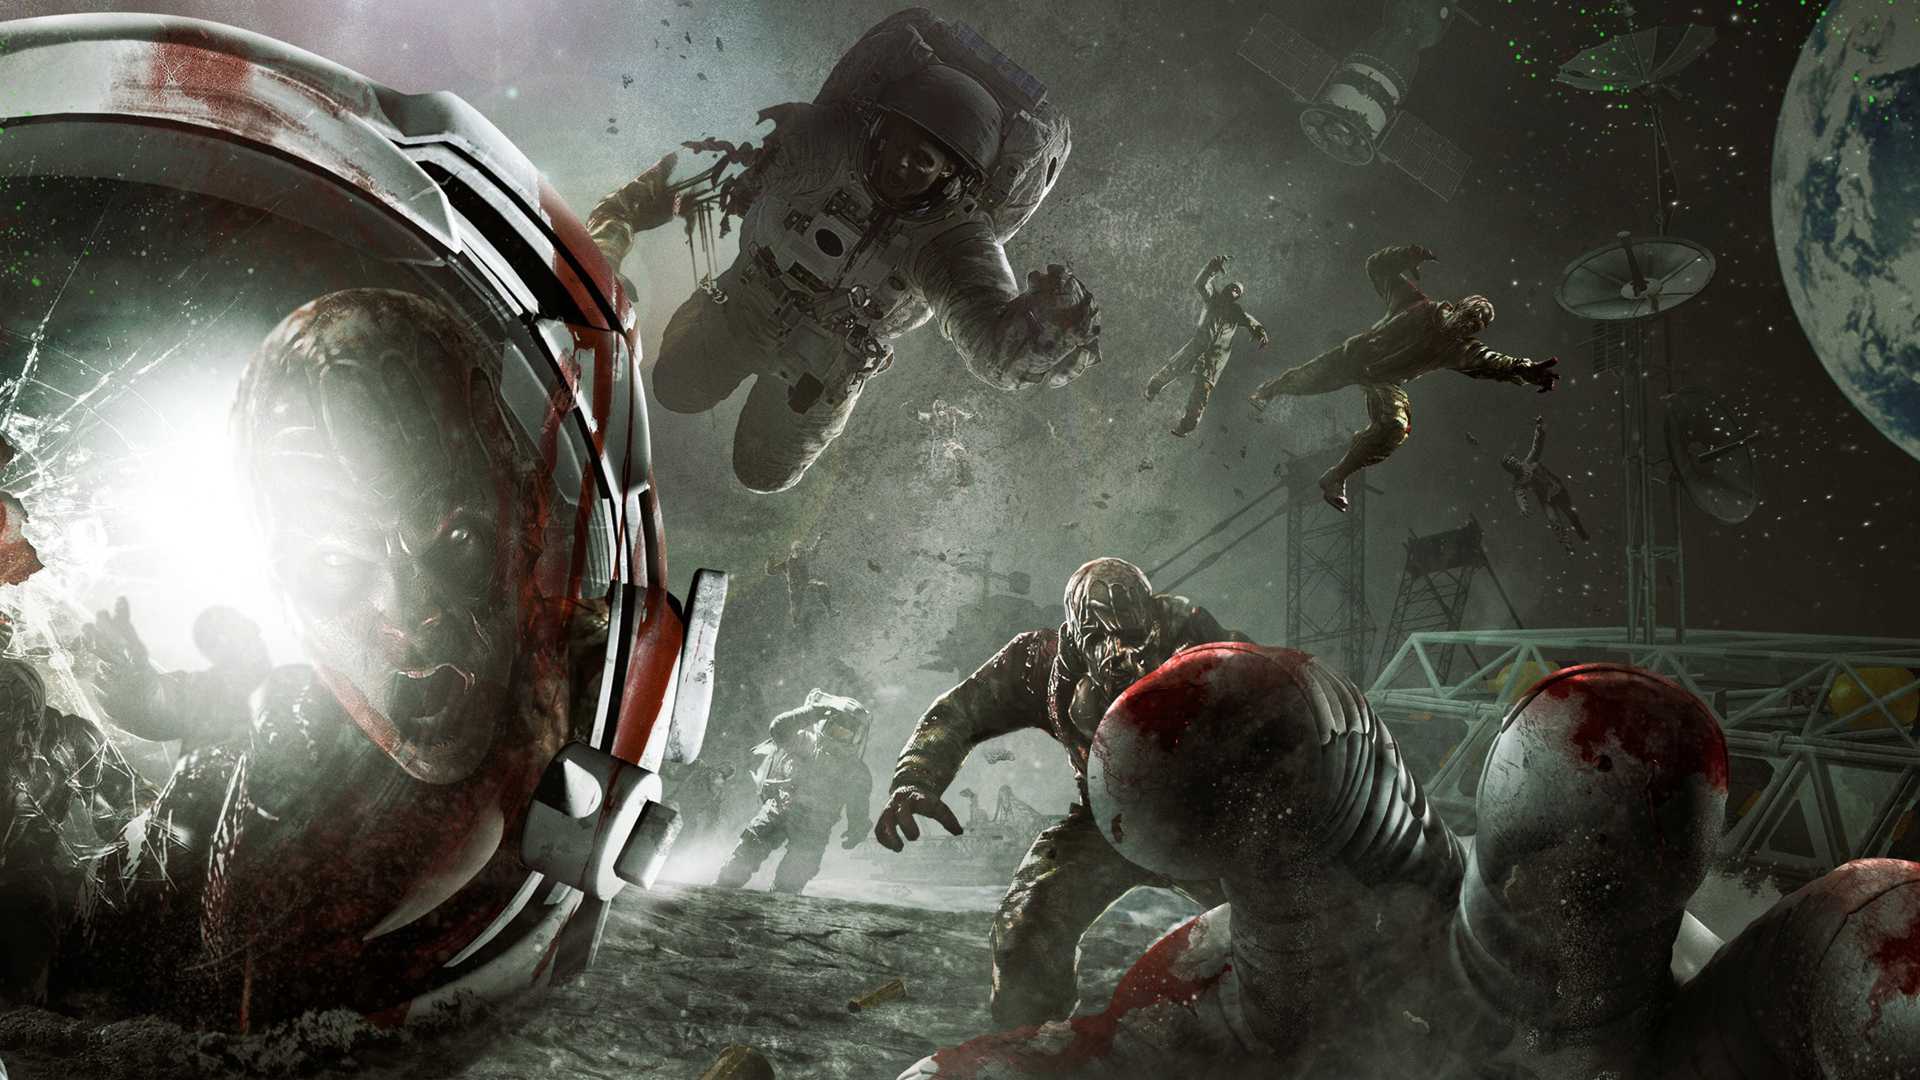 Call of duty zombies moon wallpaper 52281 1920x1080px call of duty zombies moon wallpaper 52281 voltagebd Images